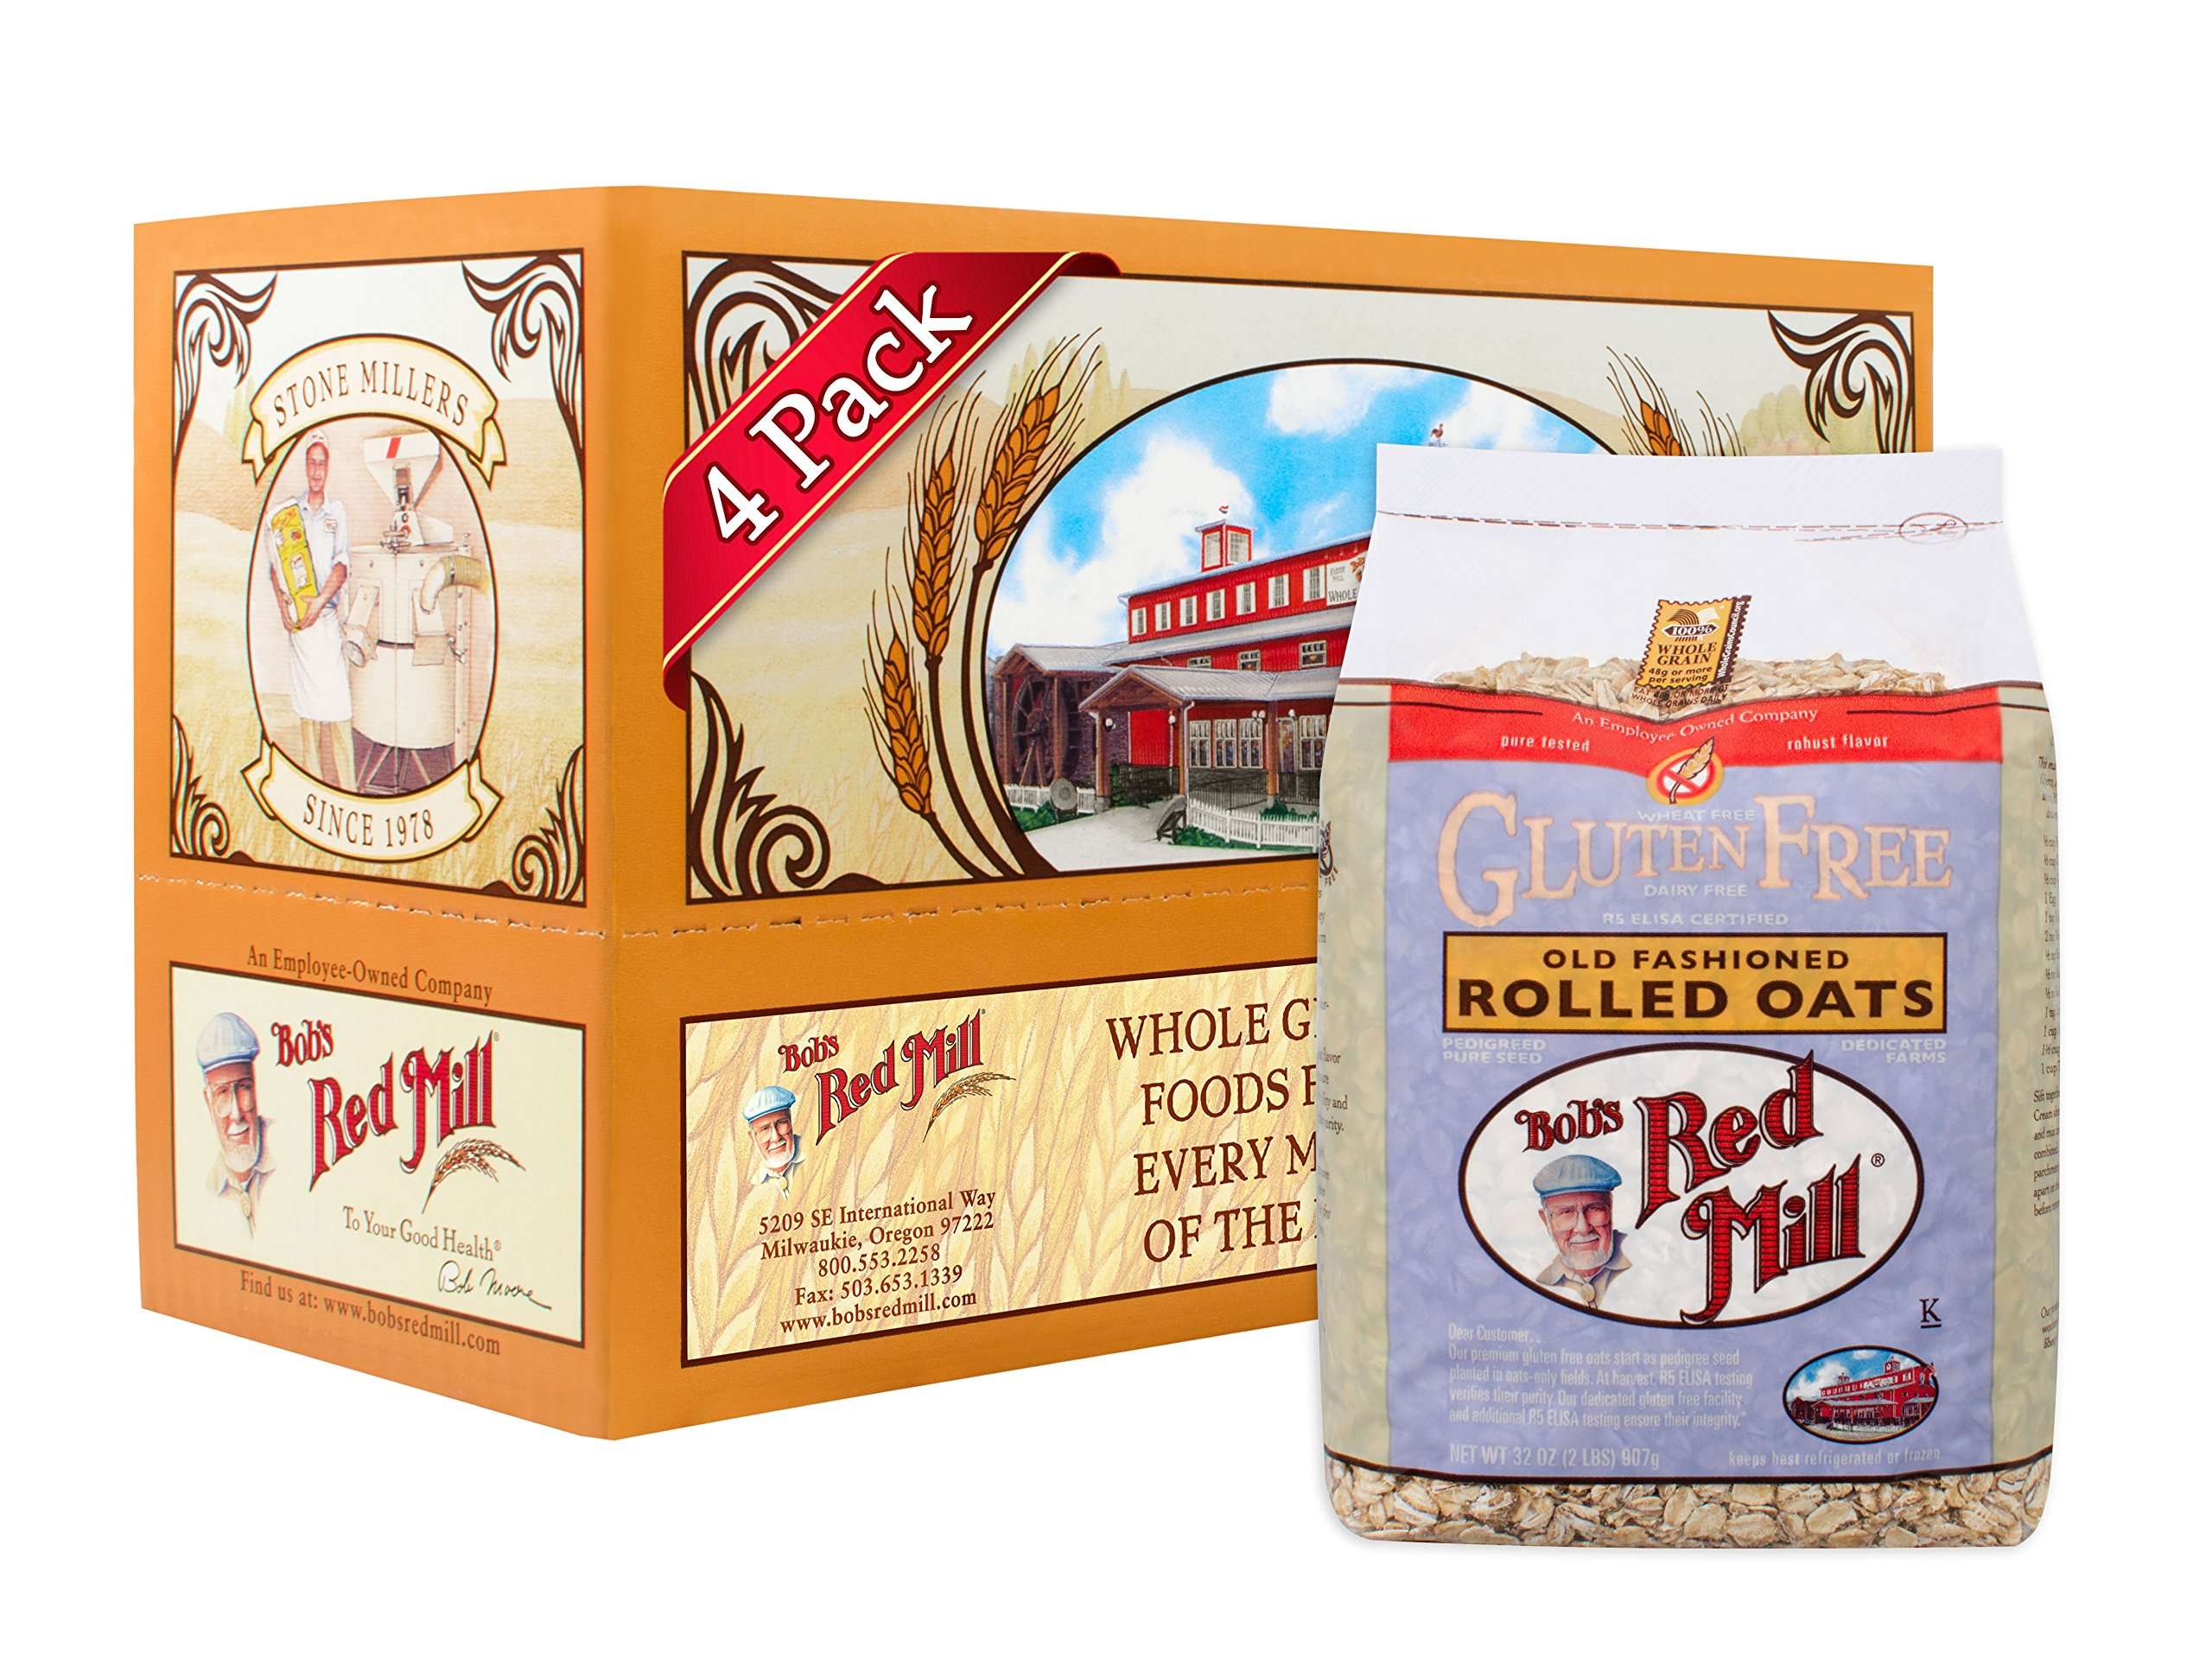 Bob's Red Mill Gluten Free Old Fashioned Rolled Oats, 32 Ounce (Pack of 4) by Bob's Red Mill